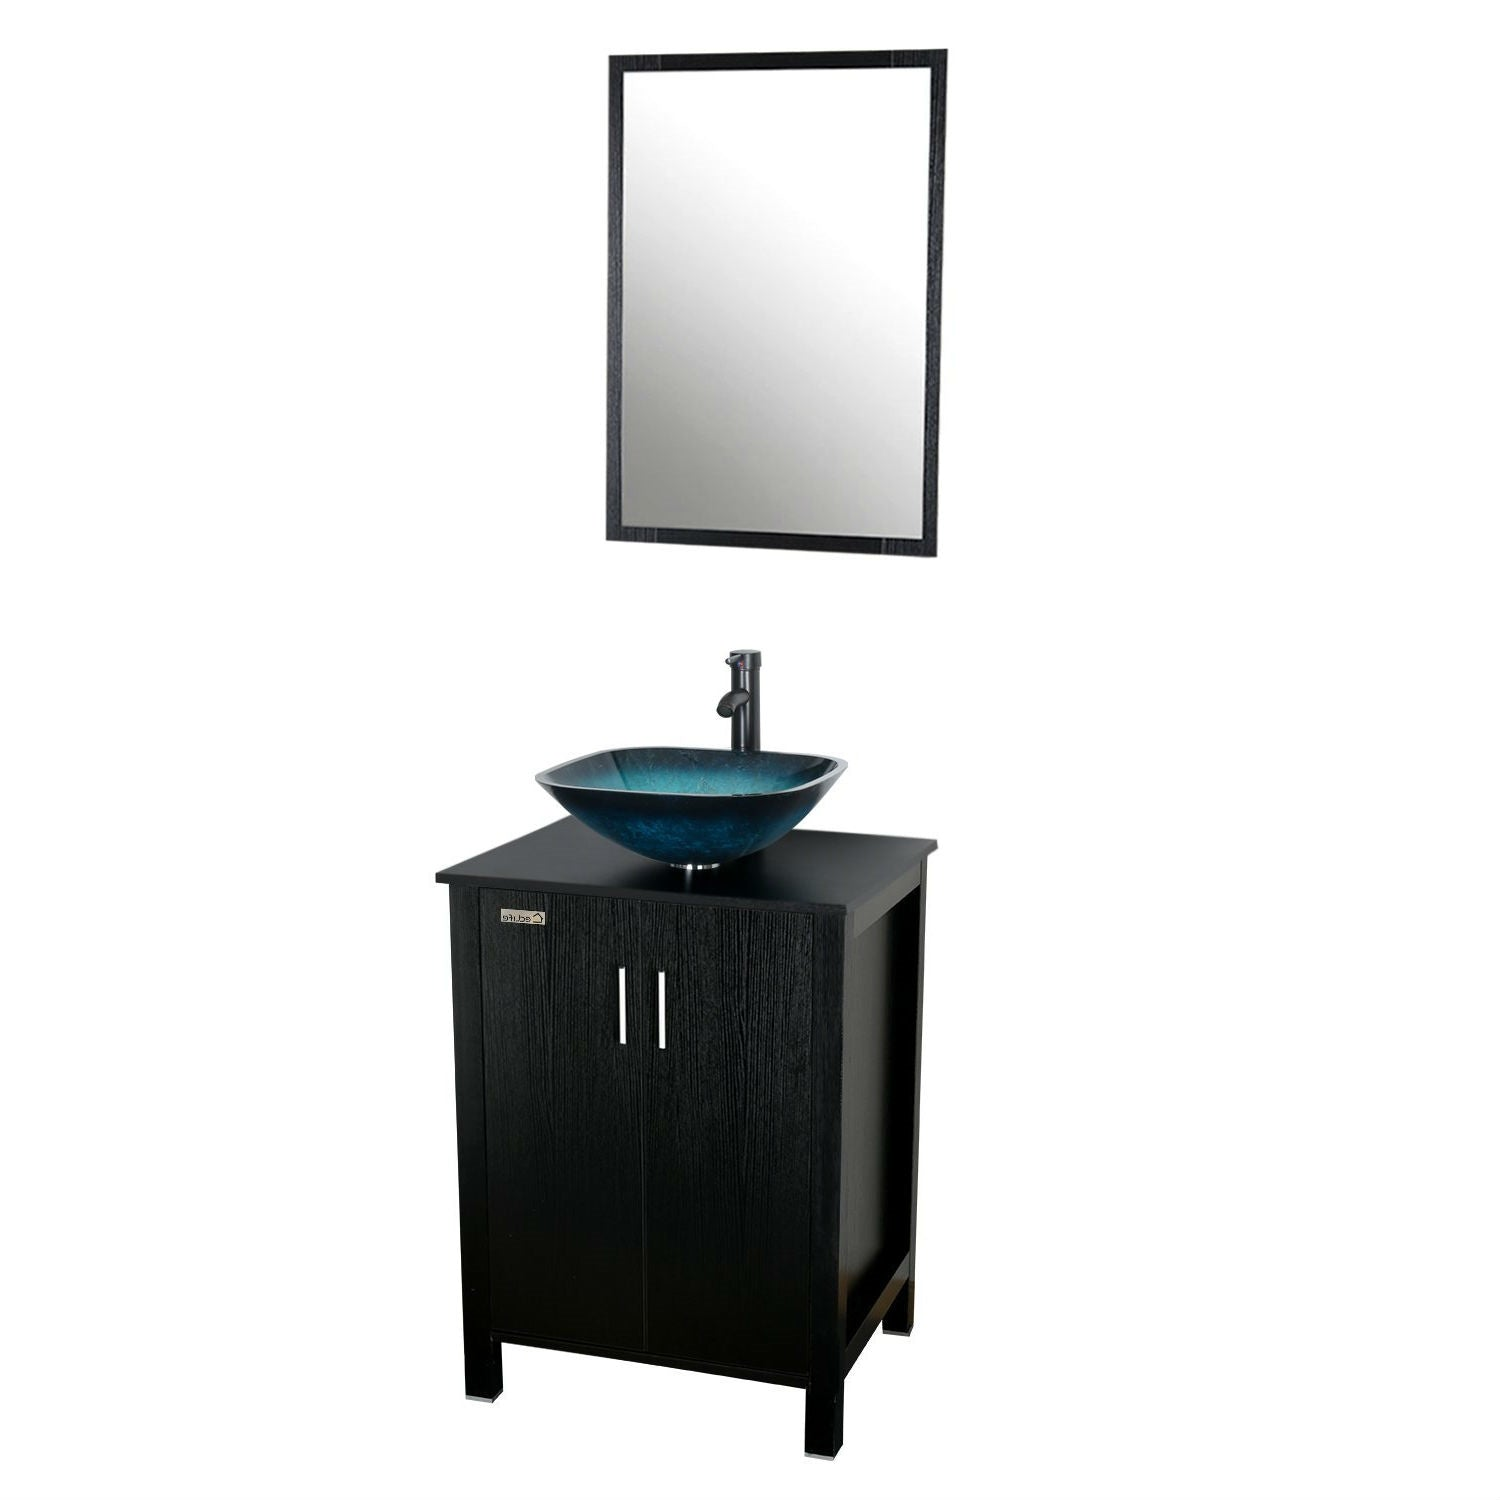 Complete Bathroom Vanity Set With Cabinet Blue Vessel Sink Faucet And